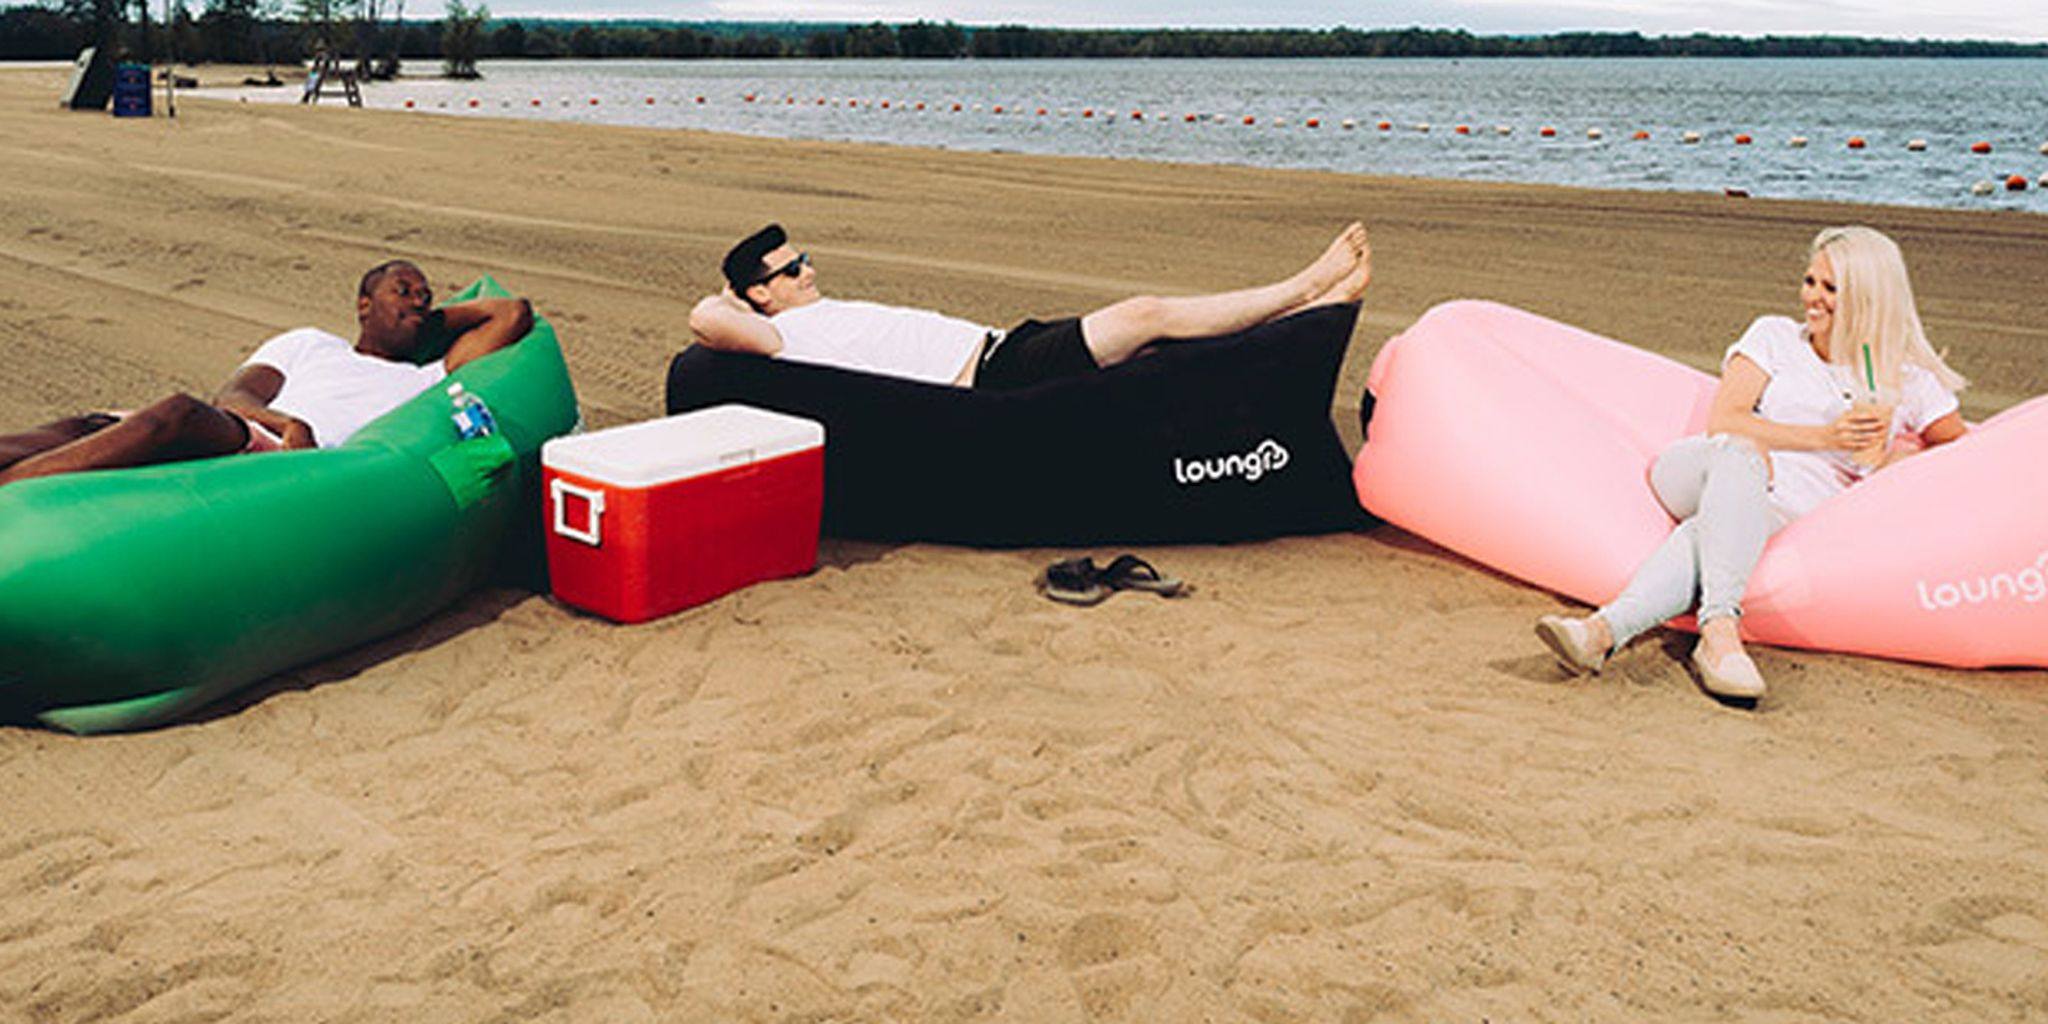 This lounger fully inflates in seconds so you can